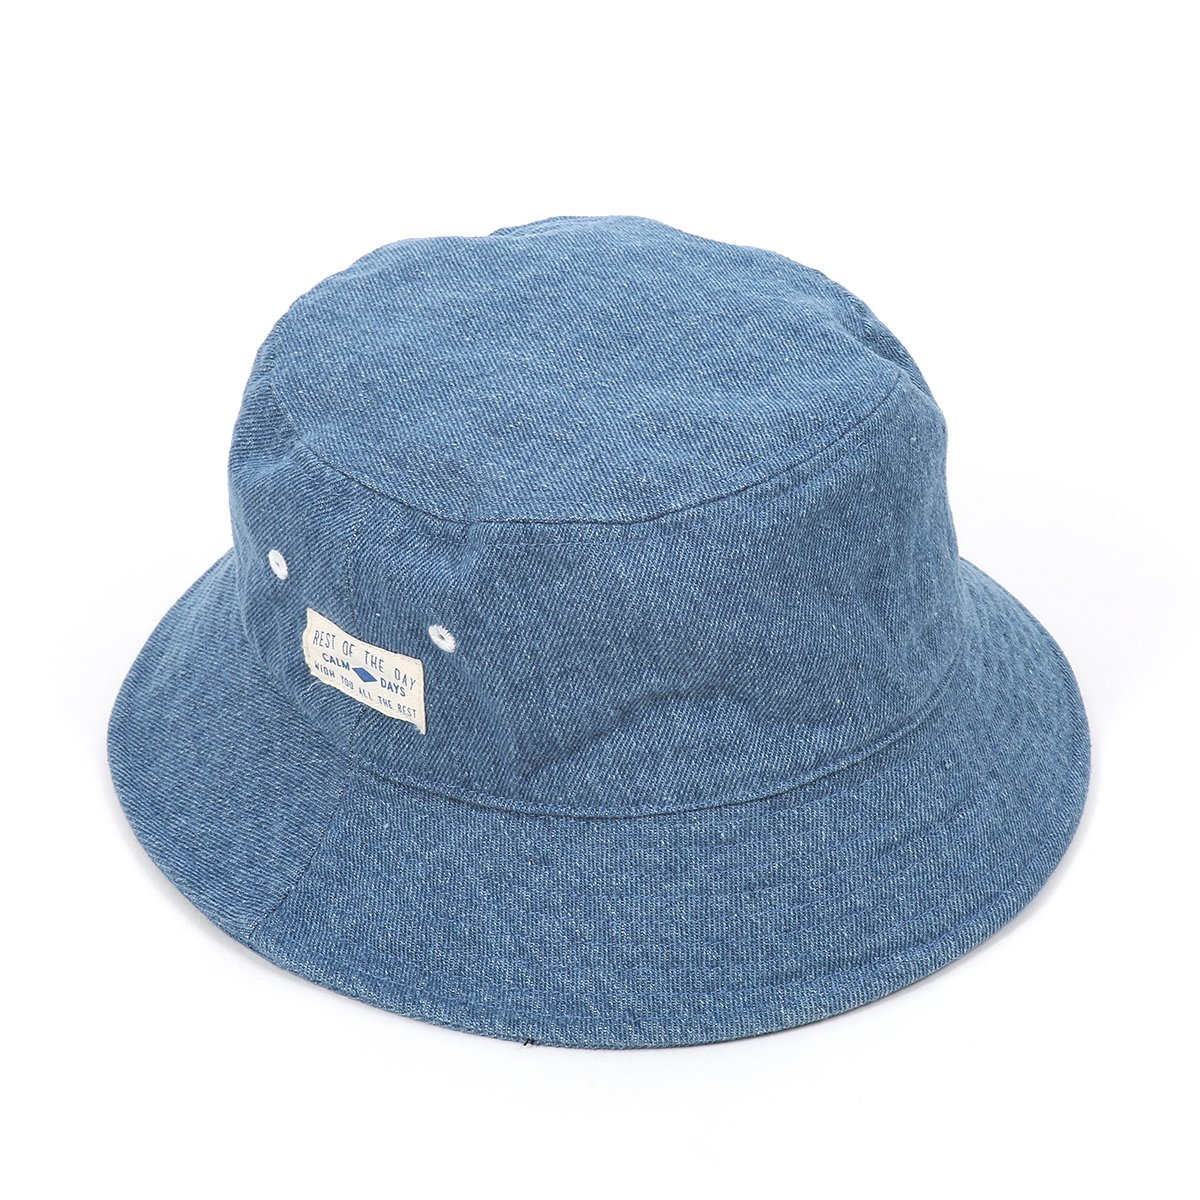 Wash Denim Bucket Hat 詳細画像3